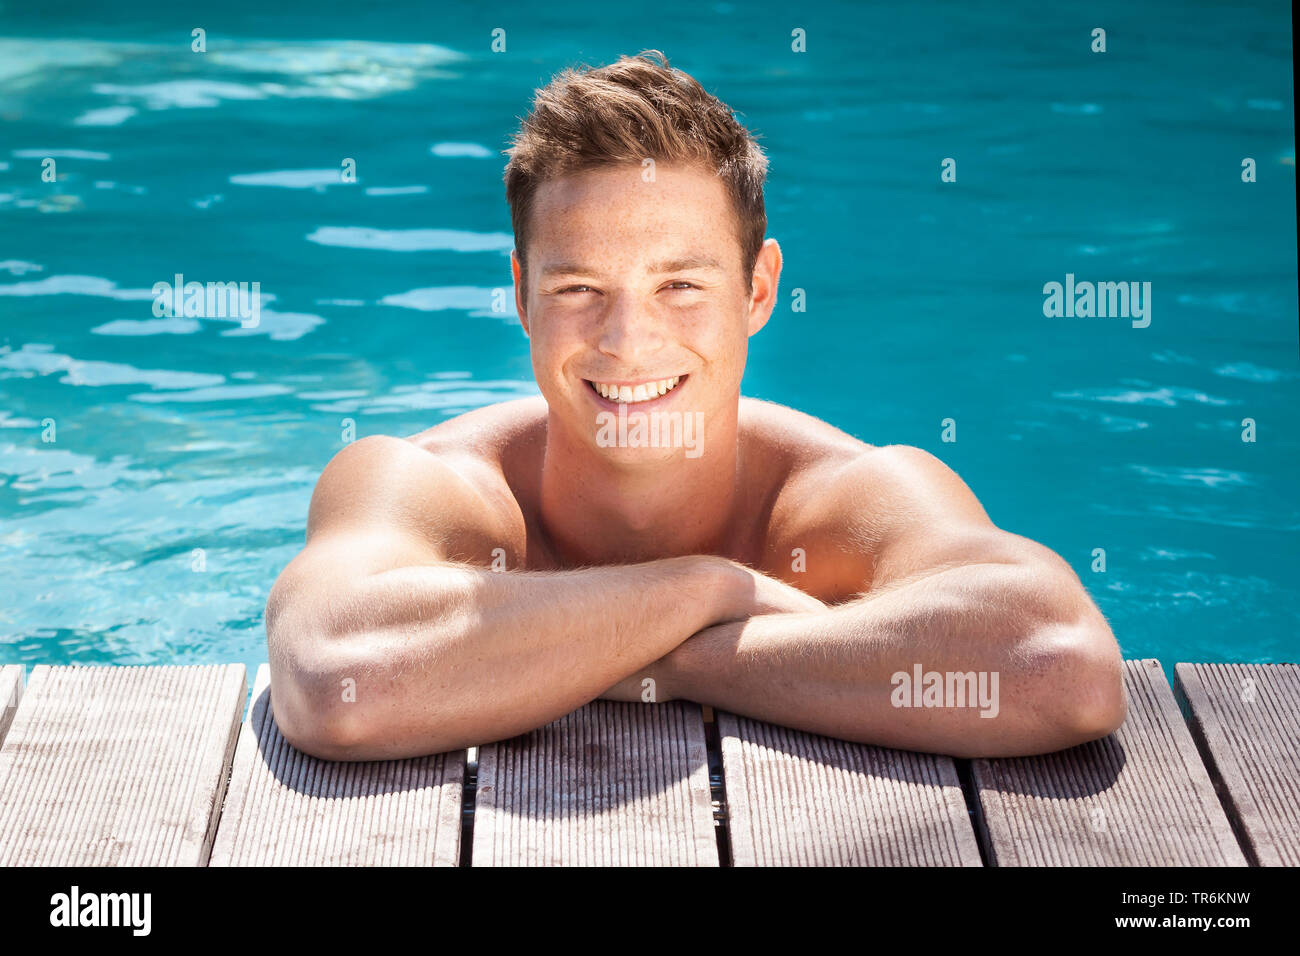 junger dunkelblonder Mann am Beckenrand eines Swimmingpools, Deutschland | young blond man in a swimming pool, Germany | BLWS486392.jpg [ (c) blickwin - Stock Image